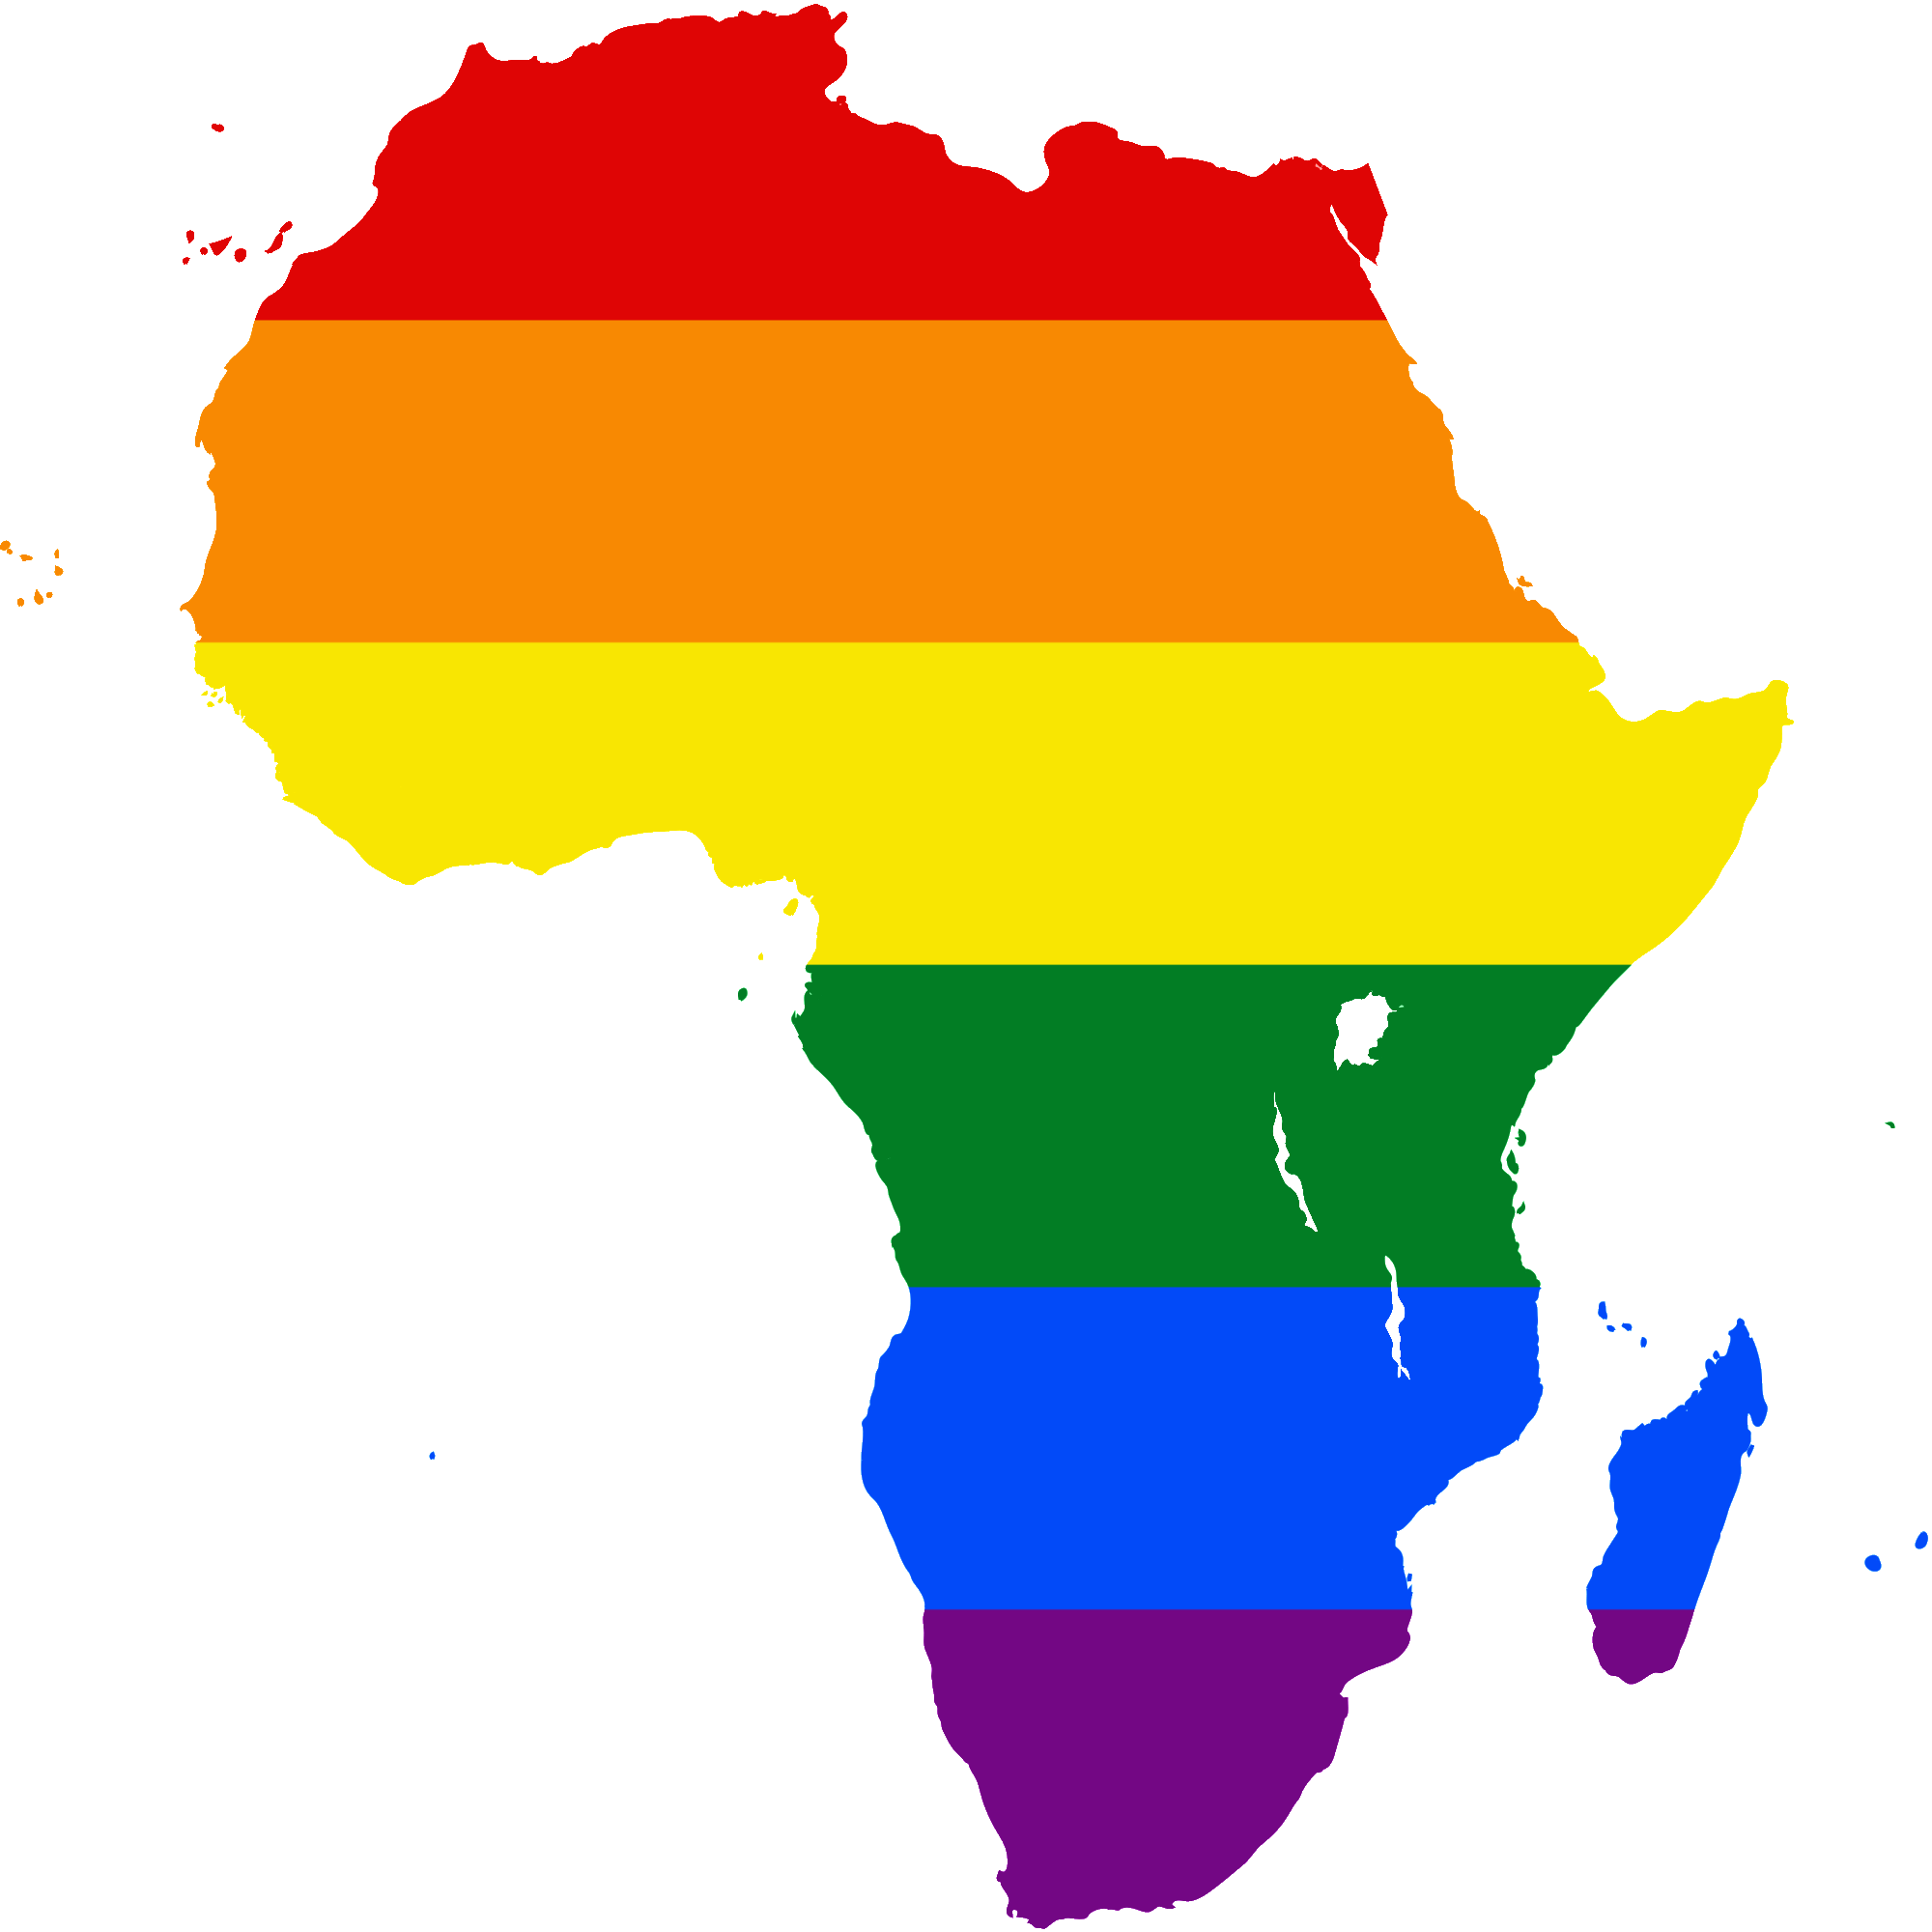 Africa png. File lgbt flag map